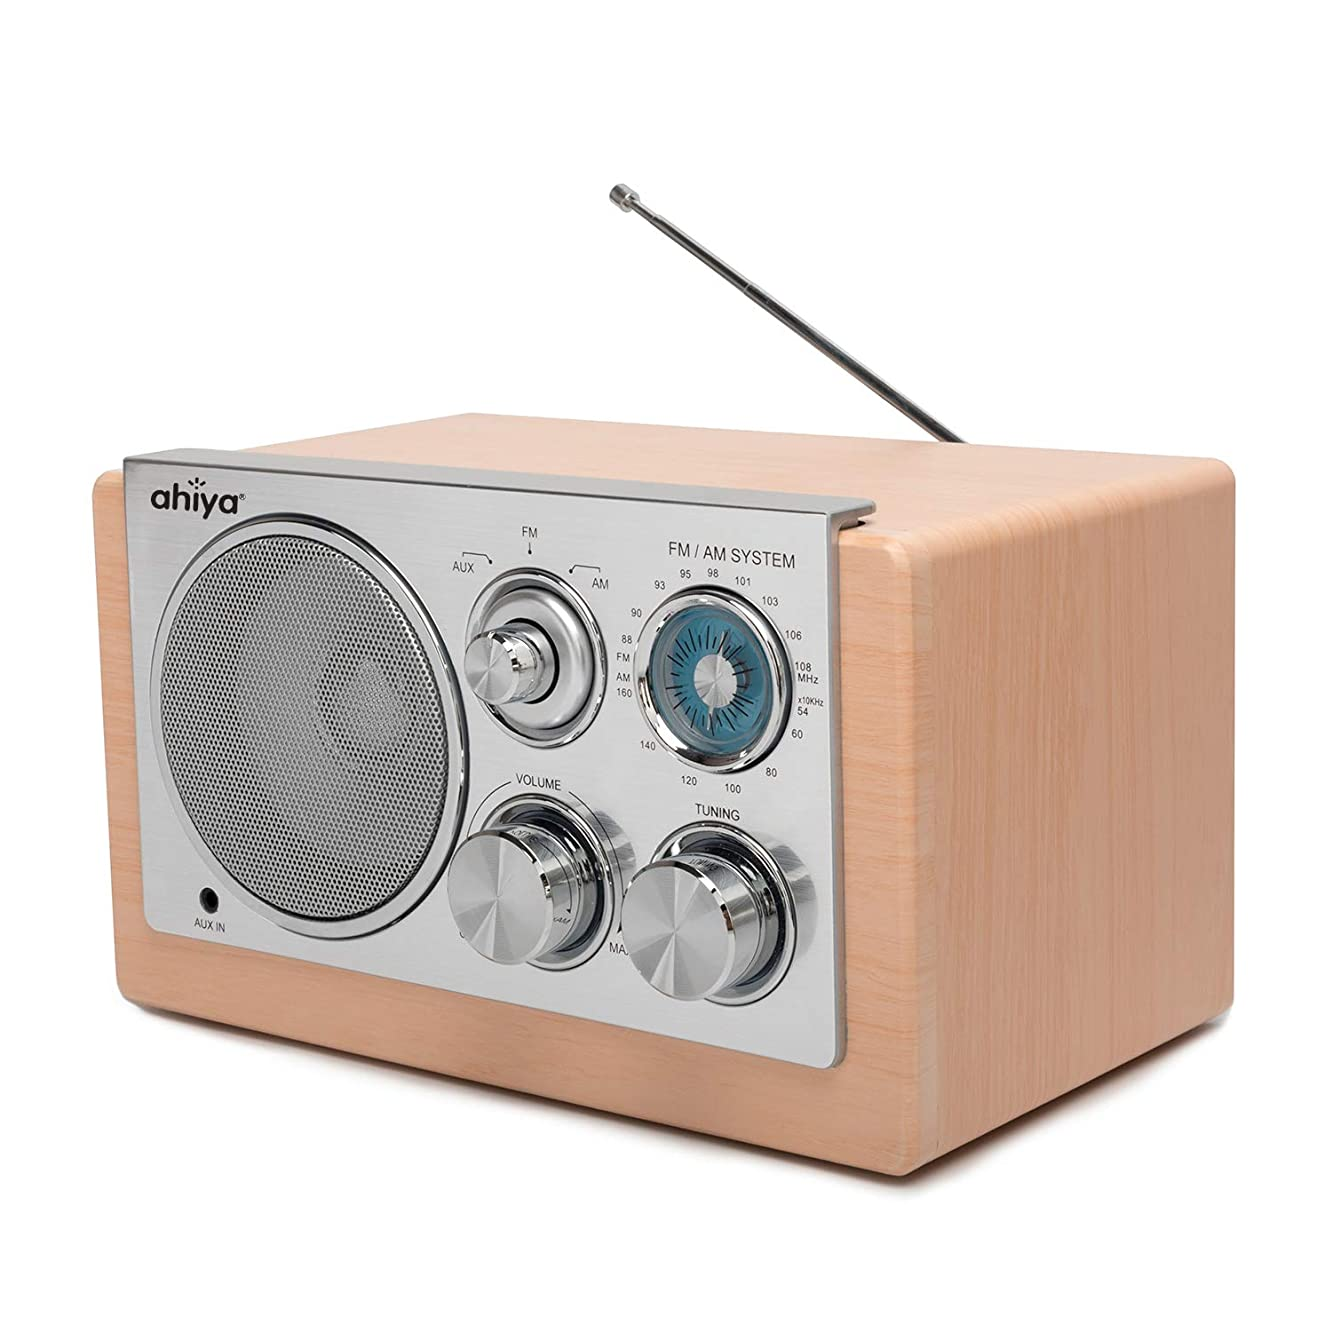 ahiya Wireless Radio Personal AM FM Sound Good Reception Retro Classic Portable Aux Input Speaker Good Selectivity Metal Antenna Best Gift for Father Mother Grandpa Grandma Wood Color